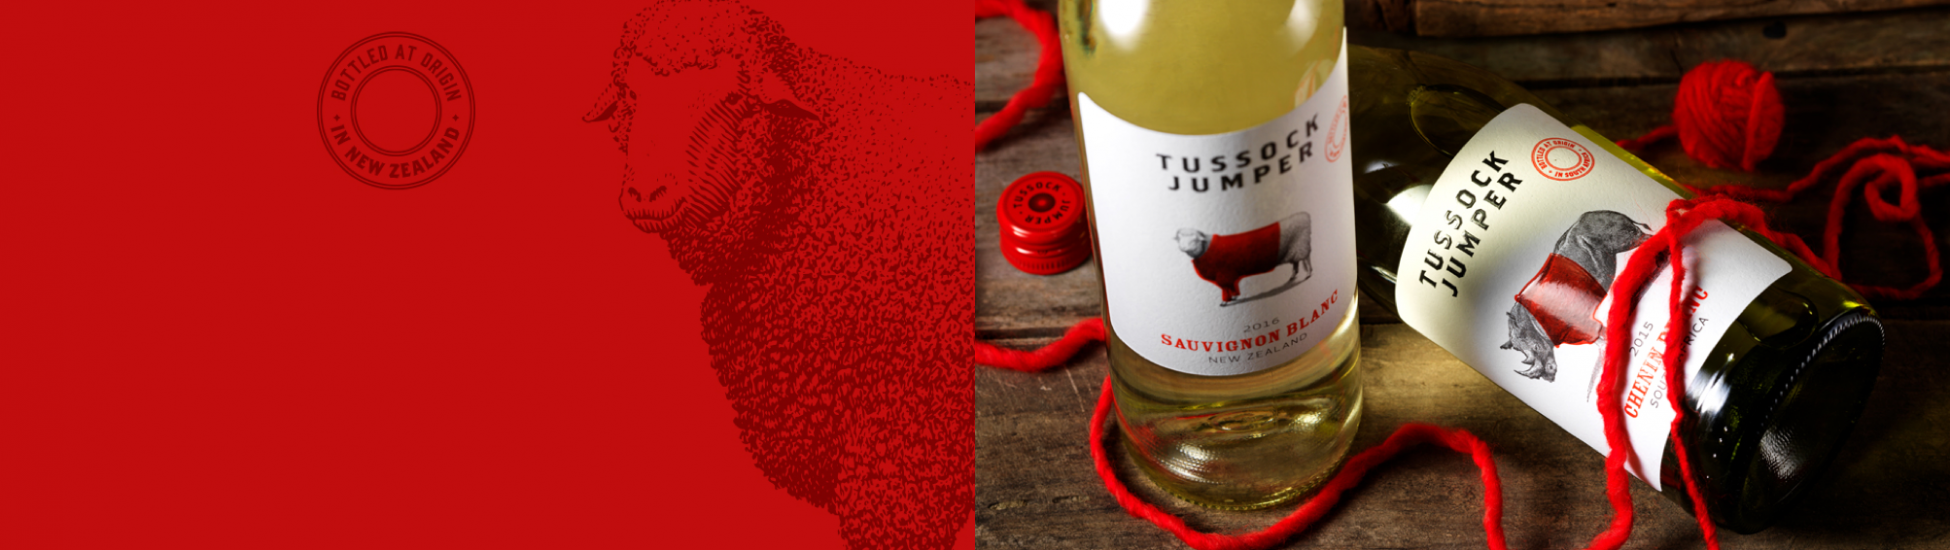 Tussock Jumper Wines - New Zealand - Sauvignon Blanc